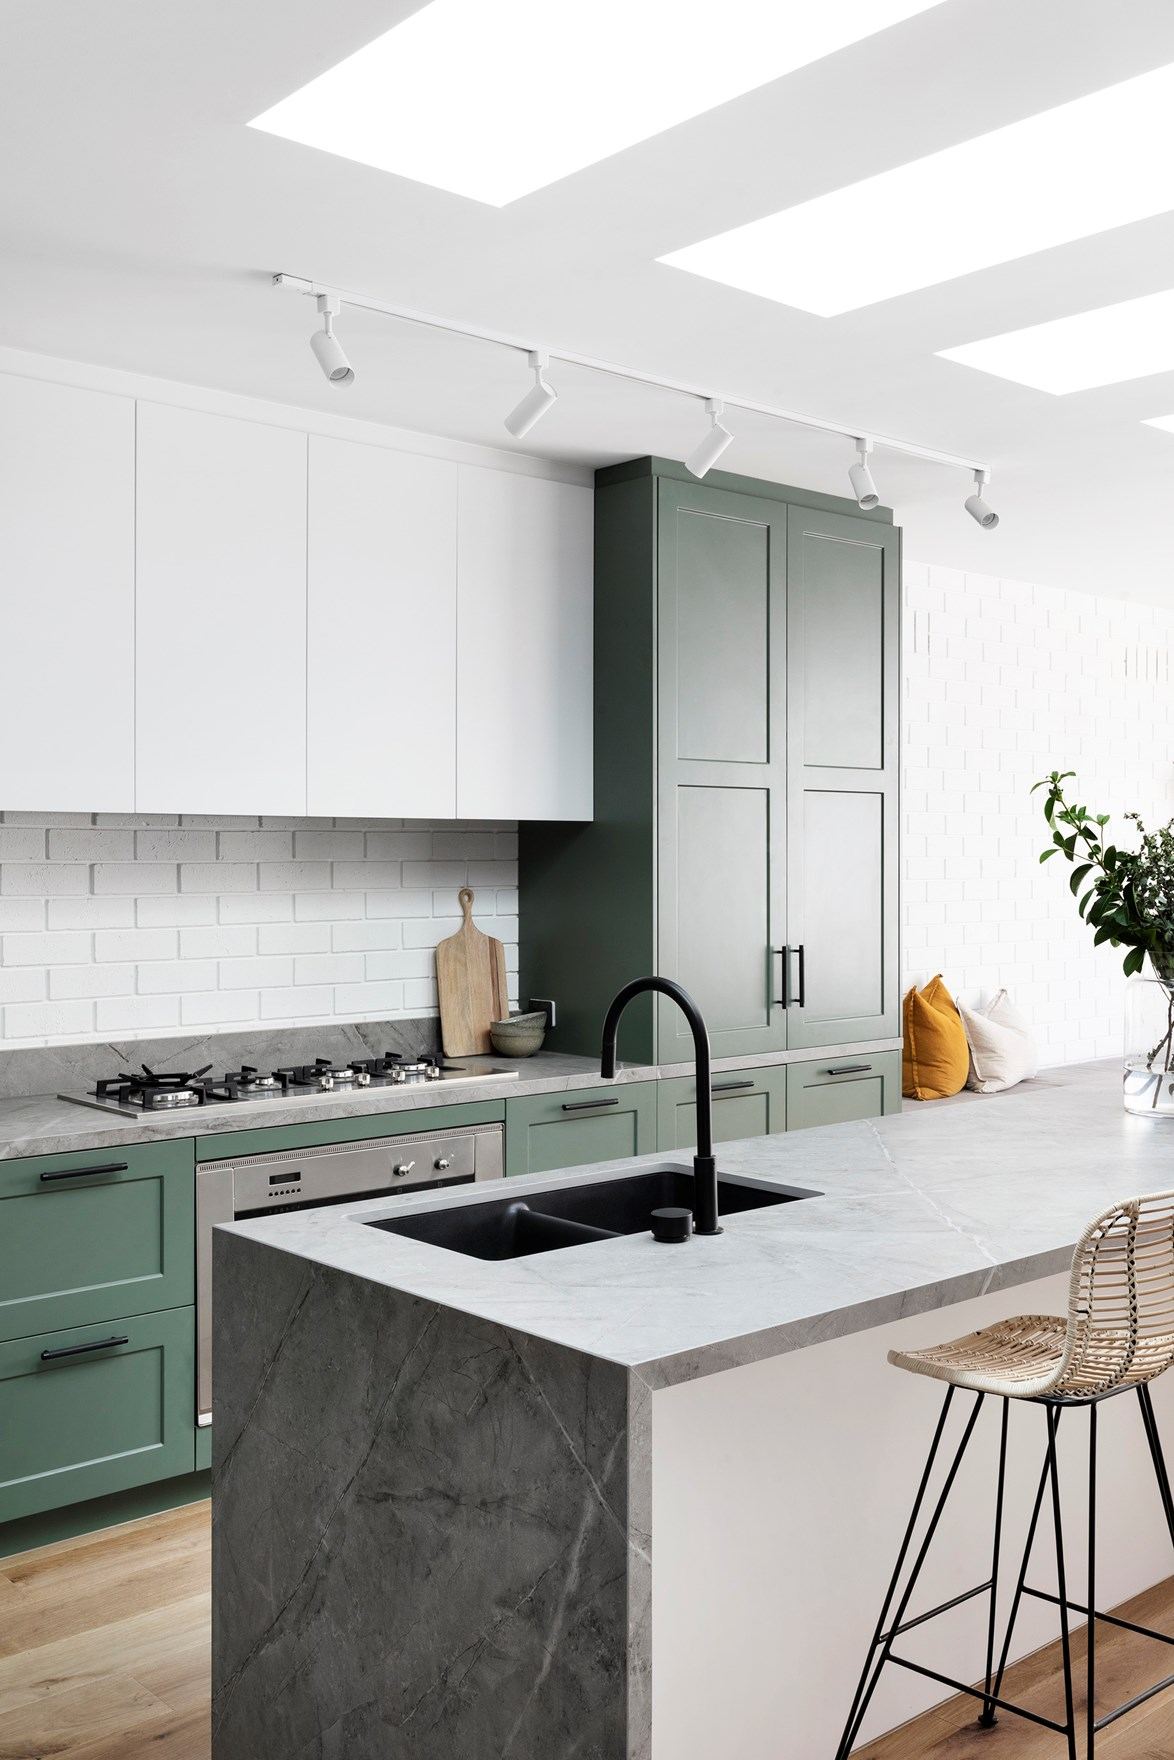 Sage green cabinetry gives this modern kitchen a point of difference.